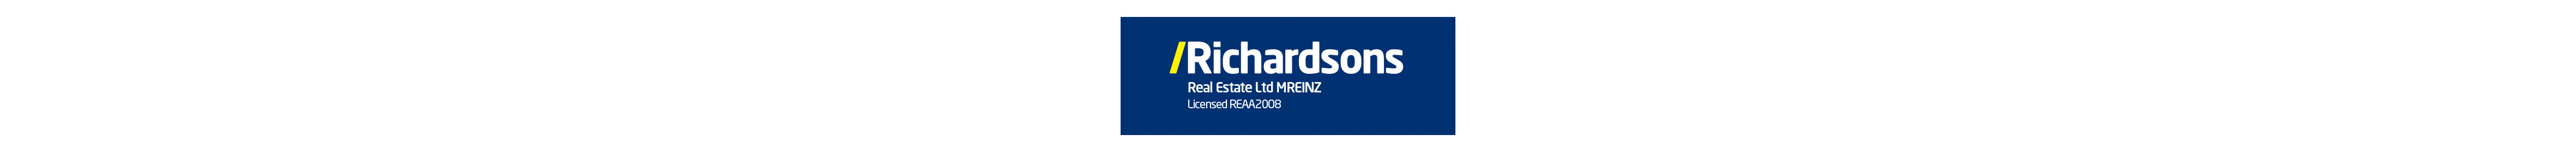 RIchardsons_Agent_logo.jpg